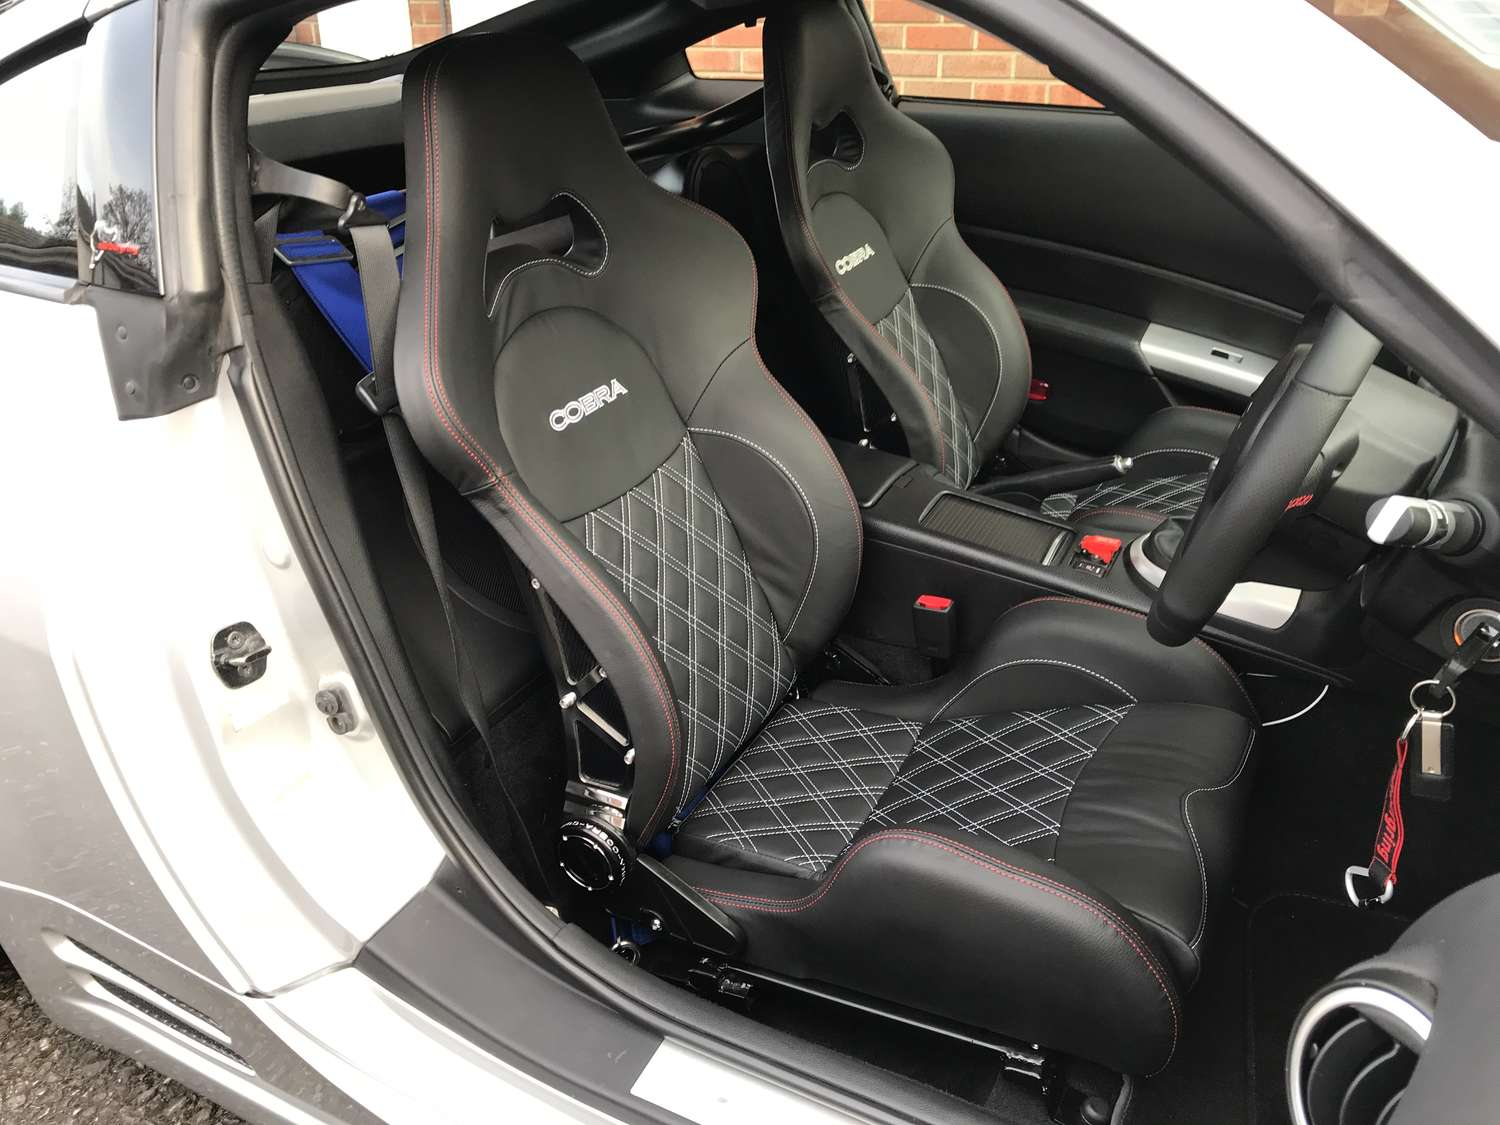 350z aftermarket seats - Interior - 350Z & 370Z UK